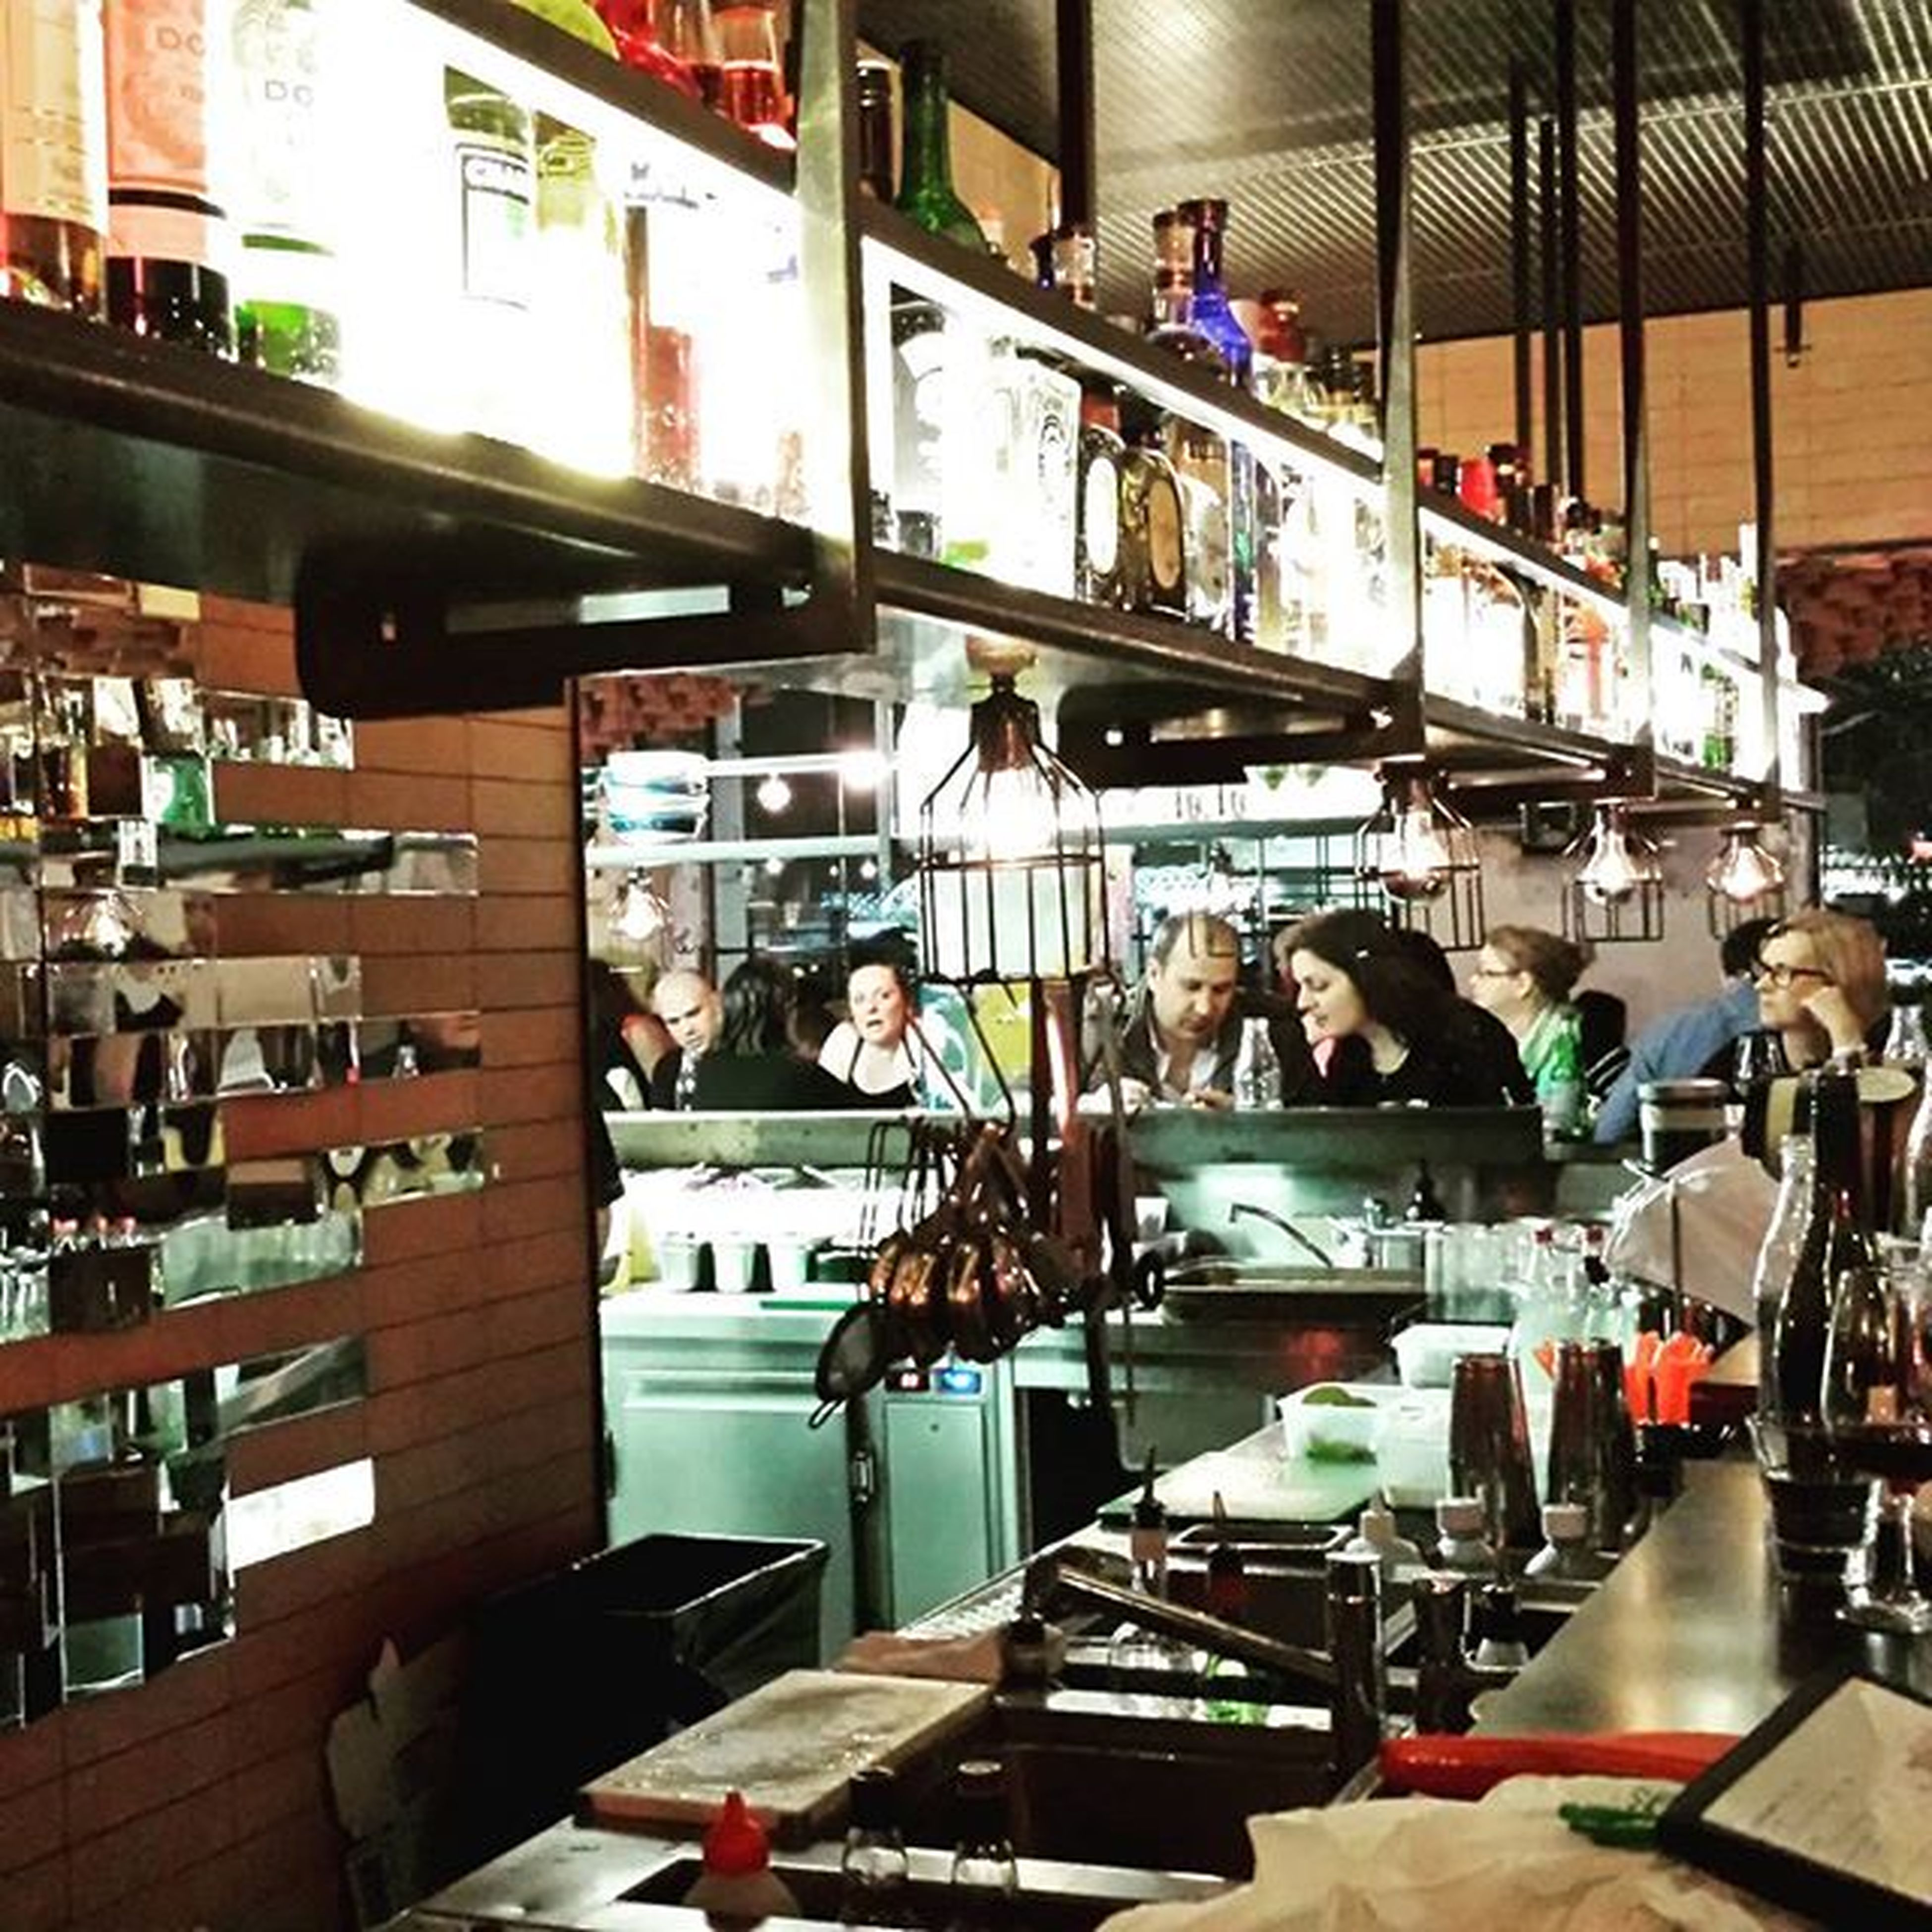 indoors, men, retail, person, arrangement, table, variation, high angle view, large group of objects, lifestyles, choice, store, restaurant, shopping, food and drink, sitting, incidental people, small business, for sale